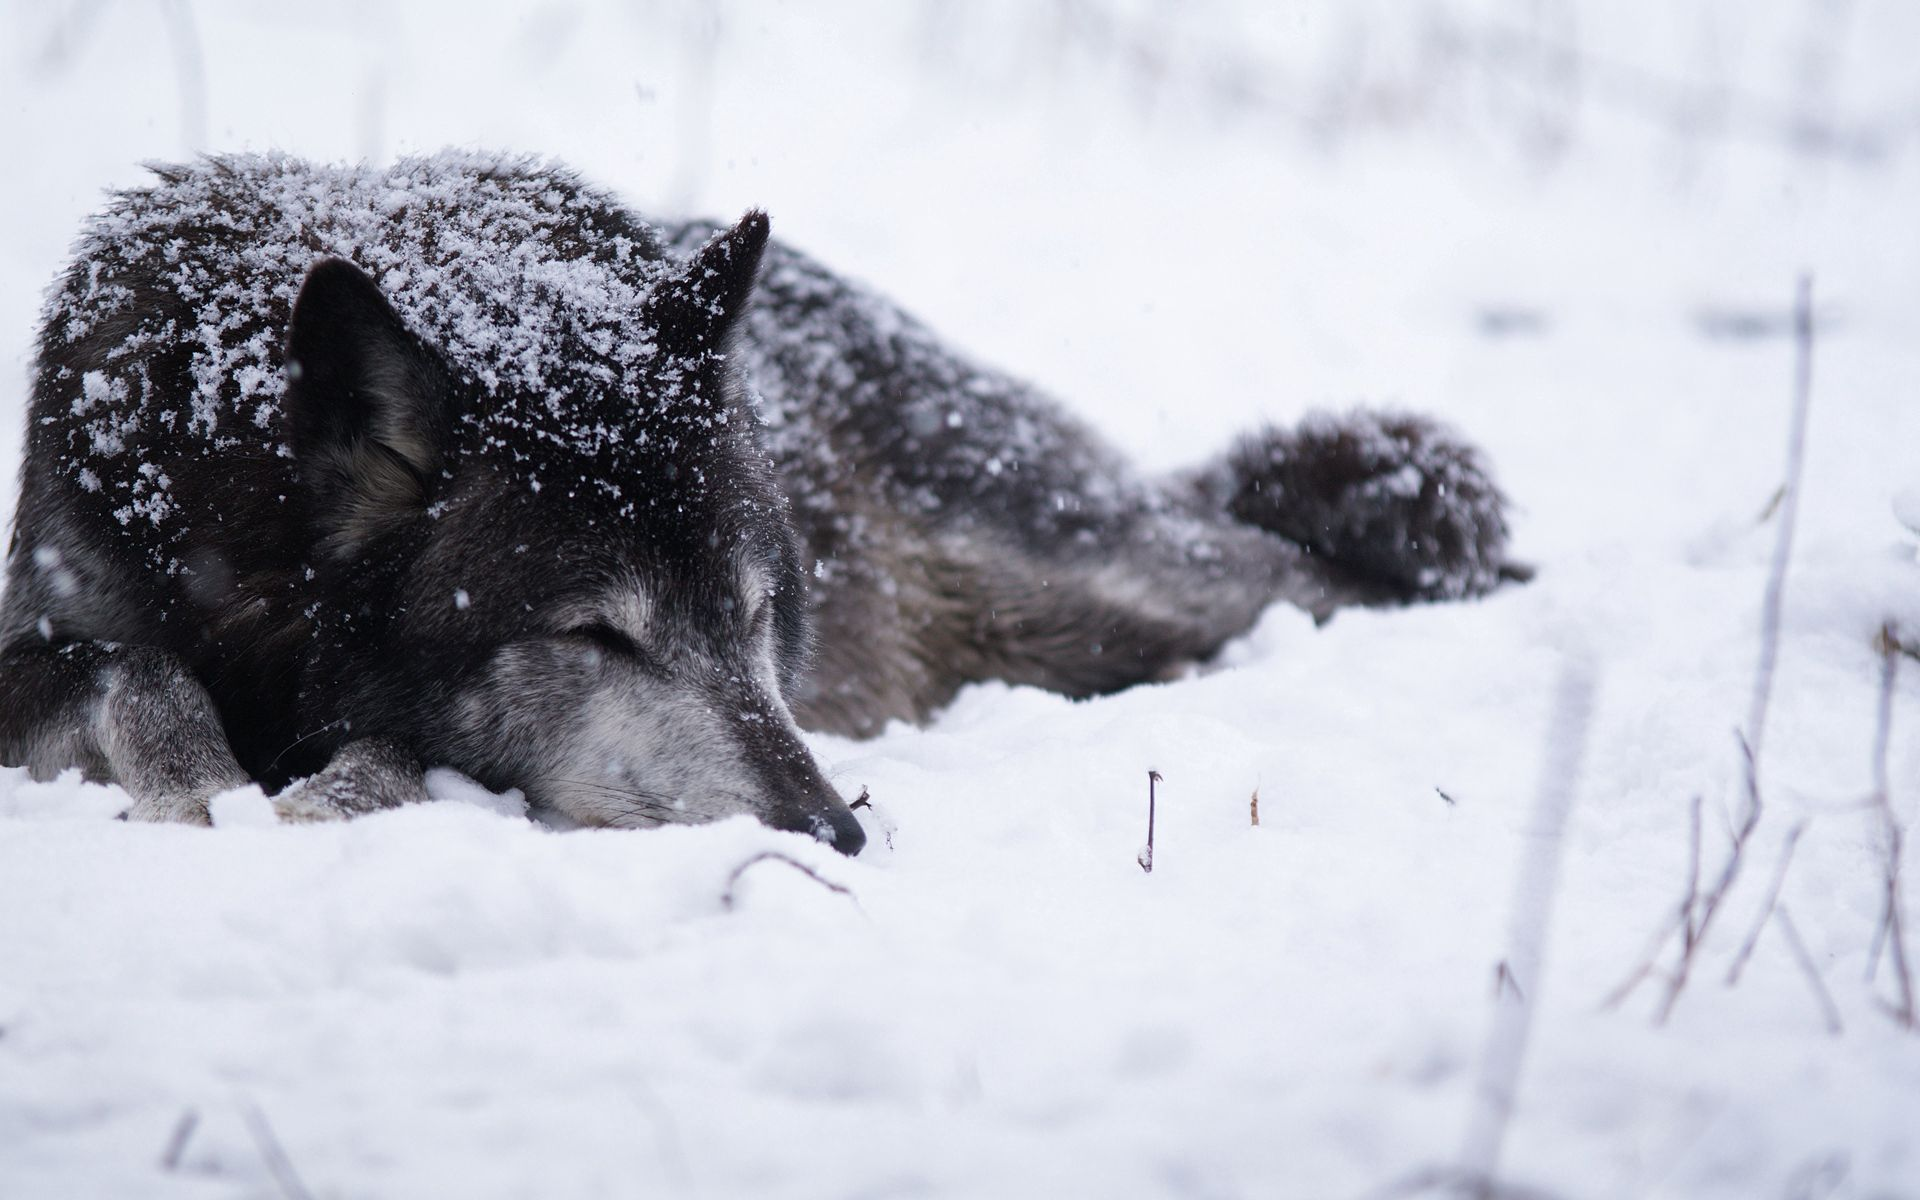 104525 download wallpaper Animals, Wolf, Snow, Snowstorm, Cold, Bask, Bw, Chb screensavers and pictures for free